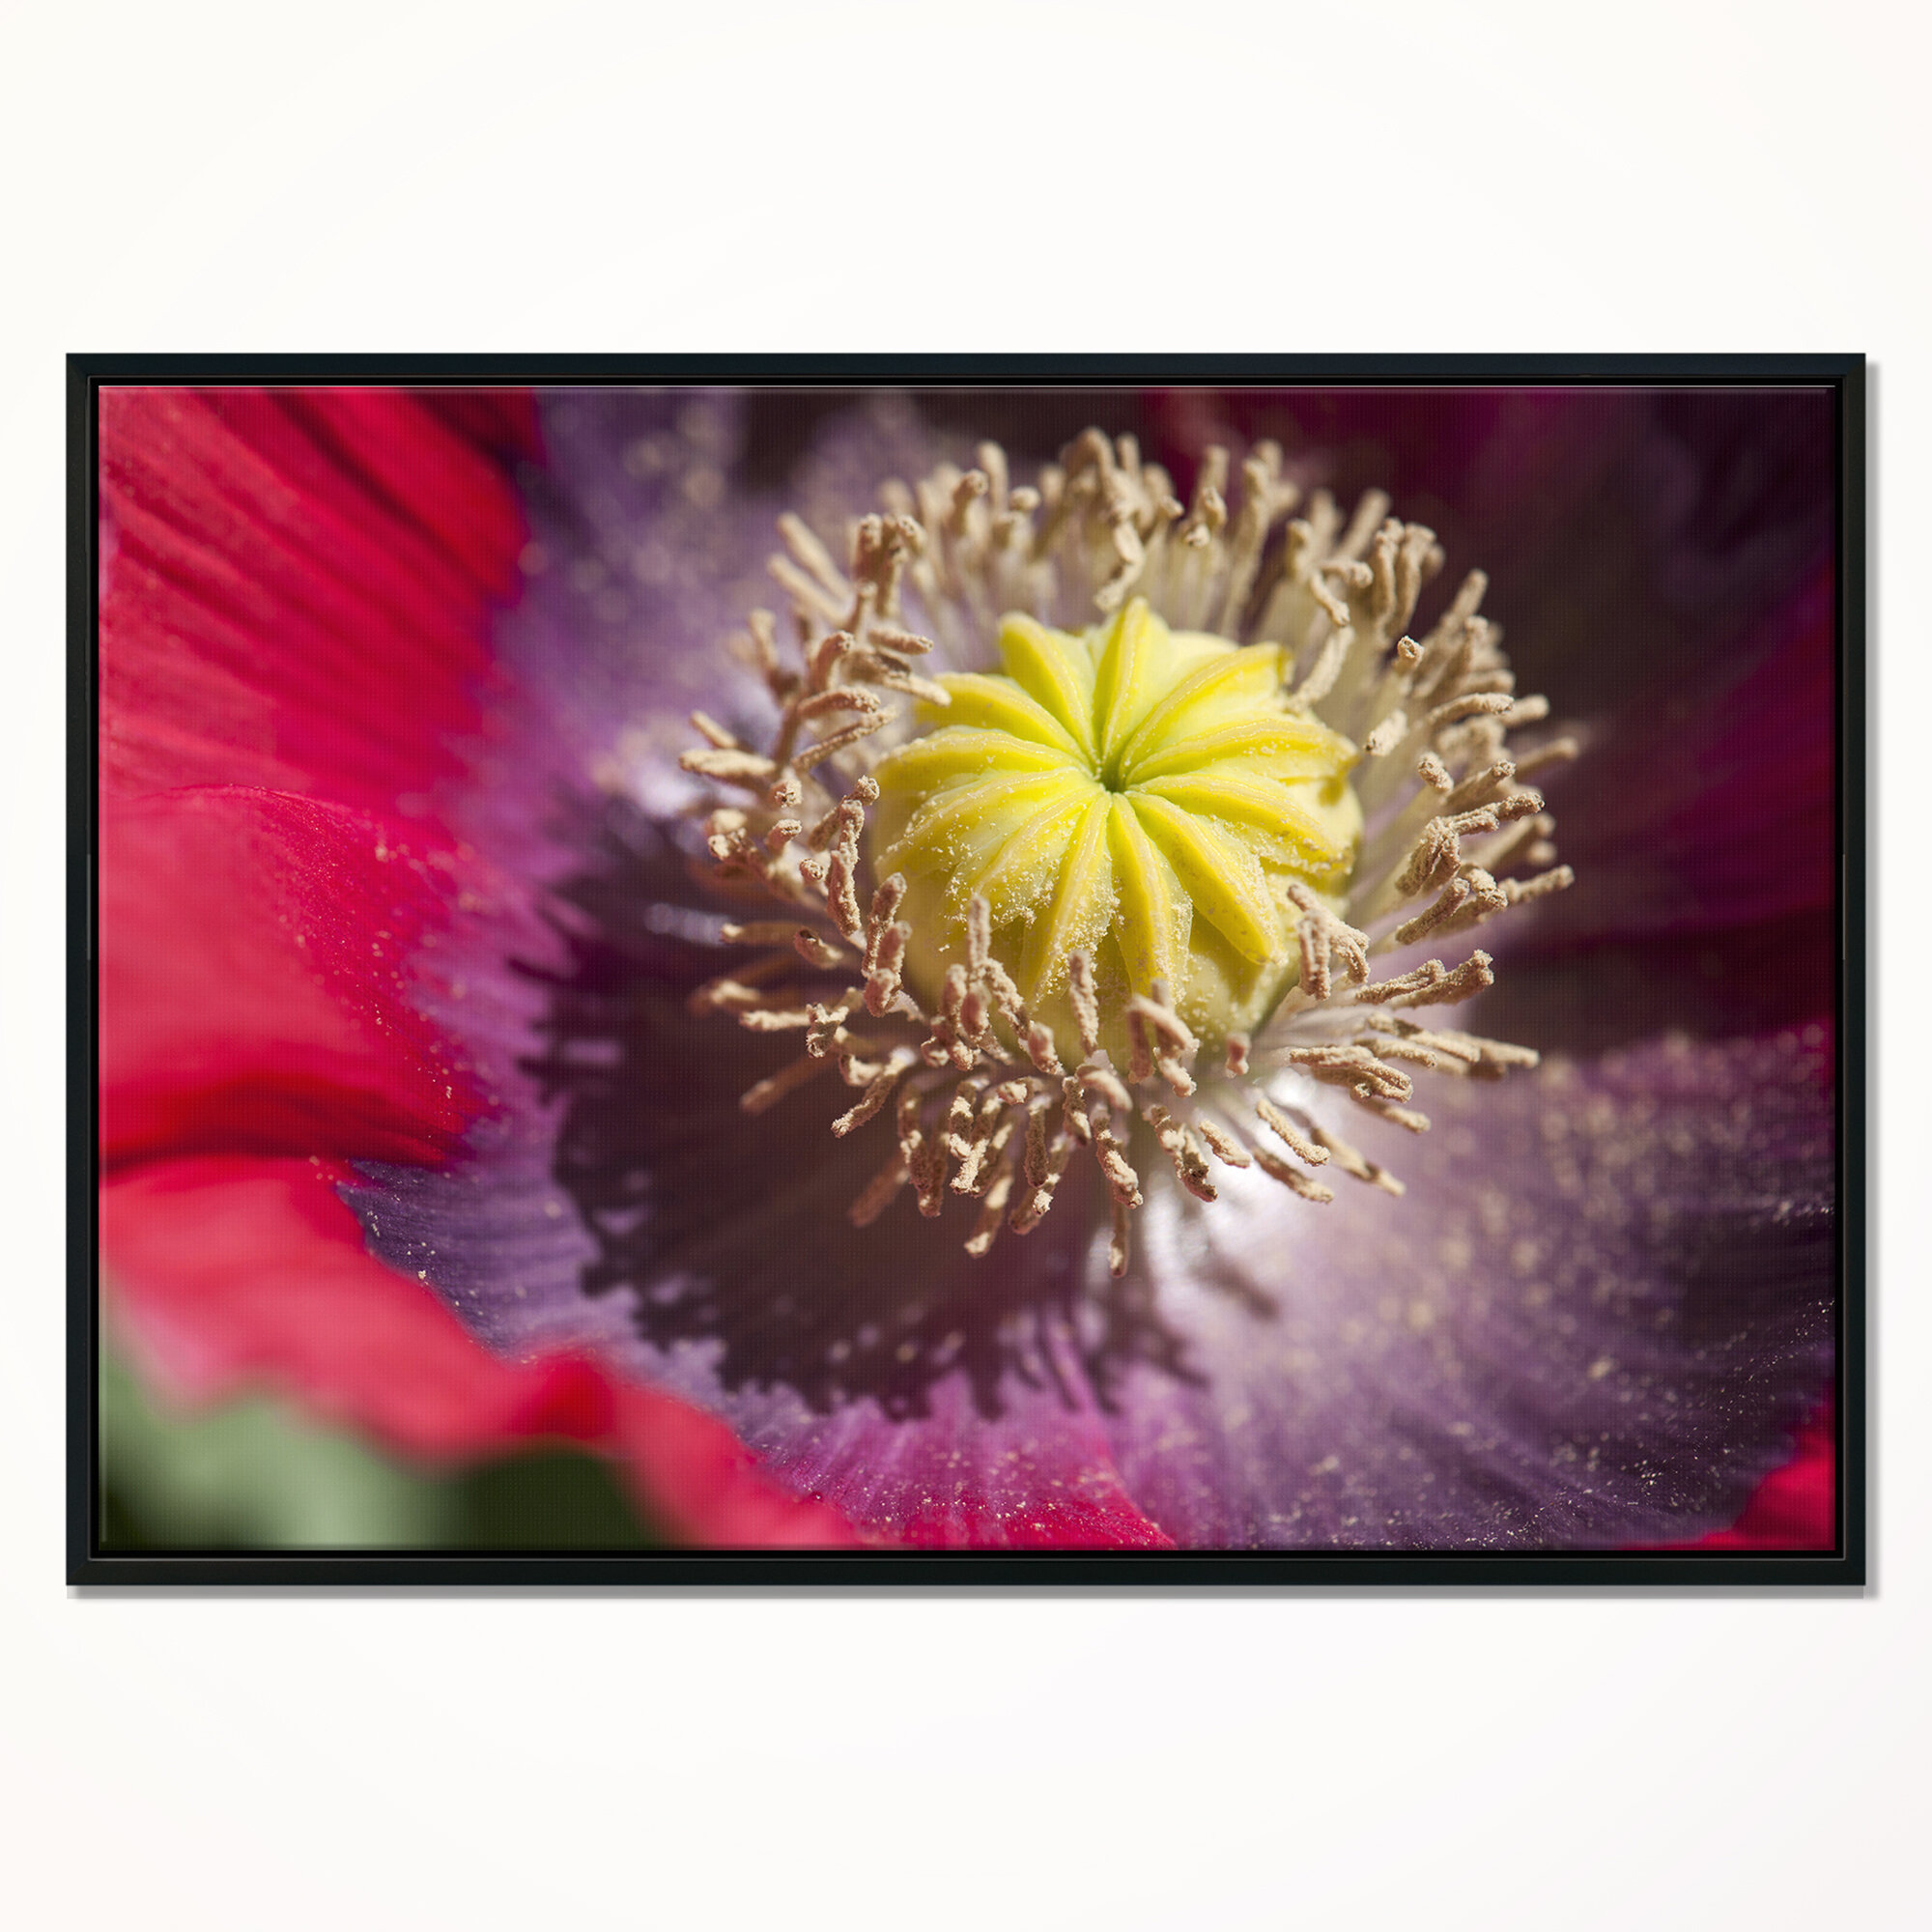 East urban home colorful opium poppy flower photo framed east urban home colorful opium poppy flower photo framed photographic print on wrapped canvas wayfair mightylinksfo